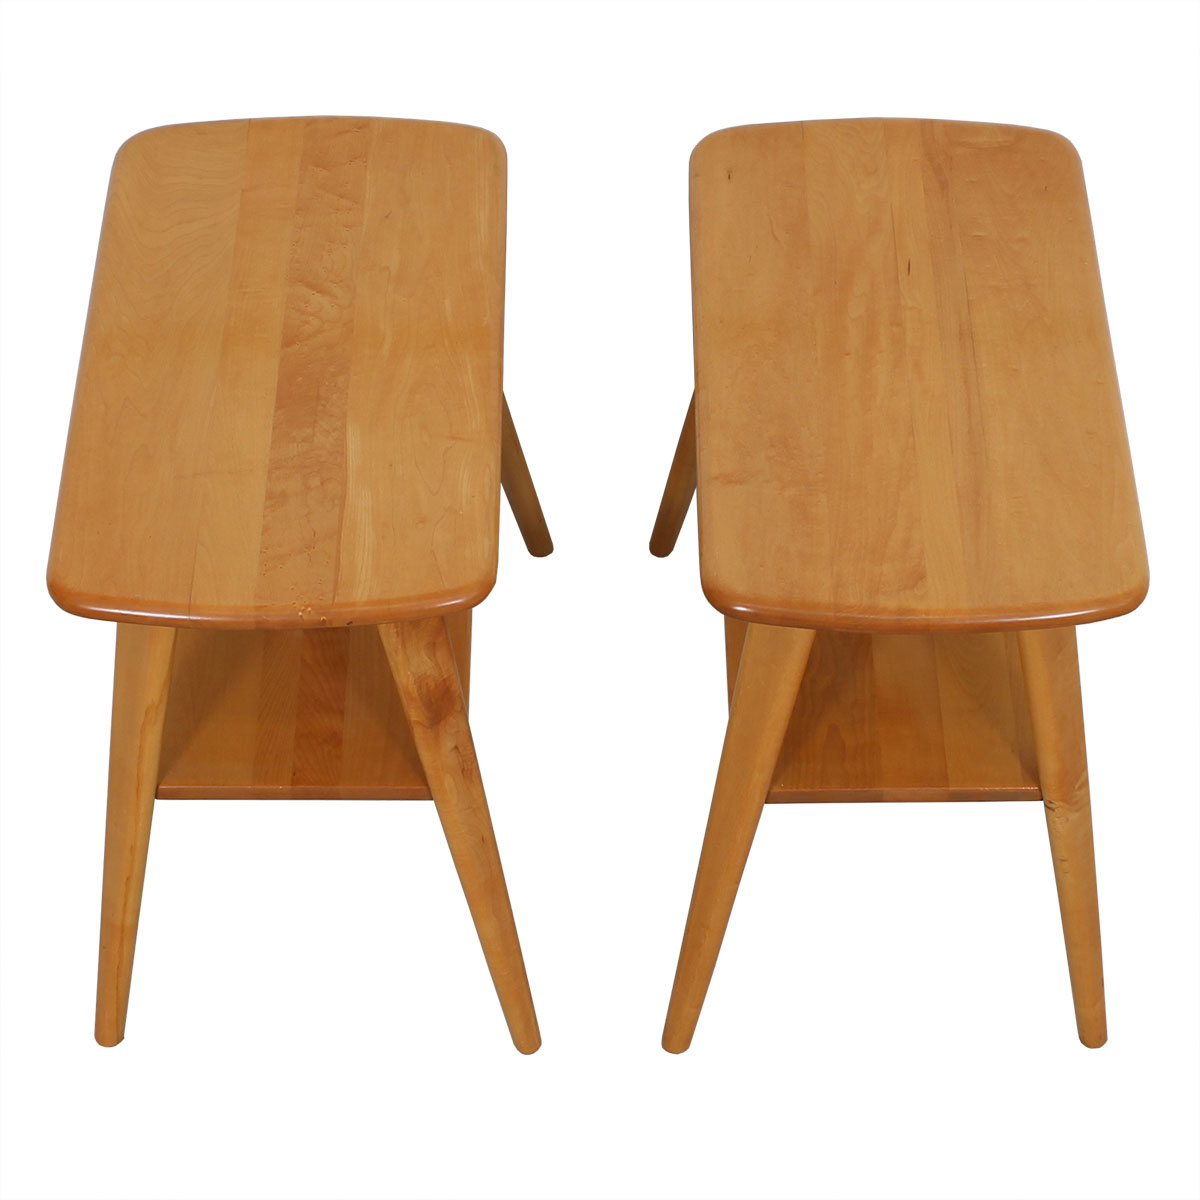 Pair of Tall & Thin Heywood Wakefield Splayed Leg Side Tables